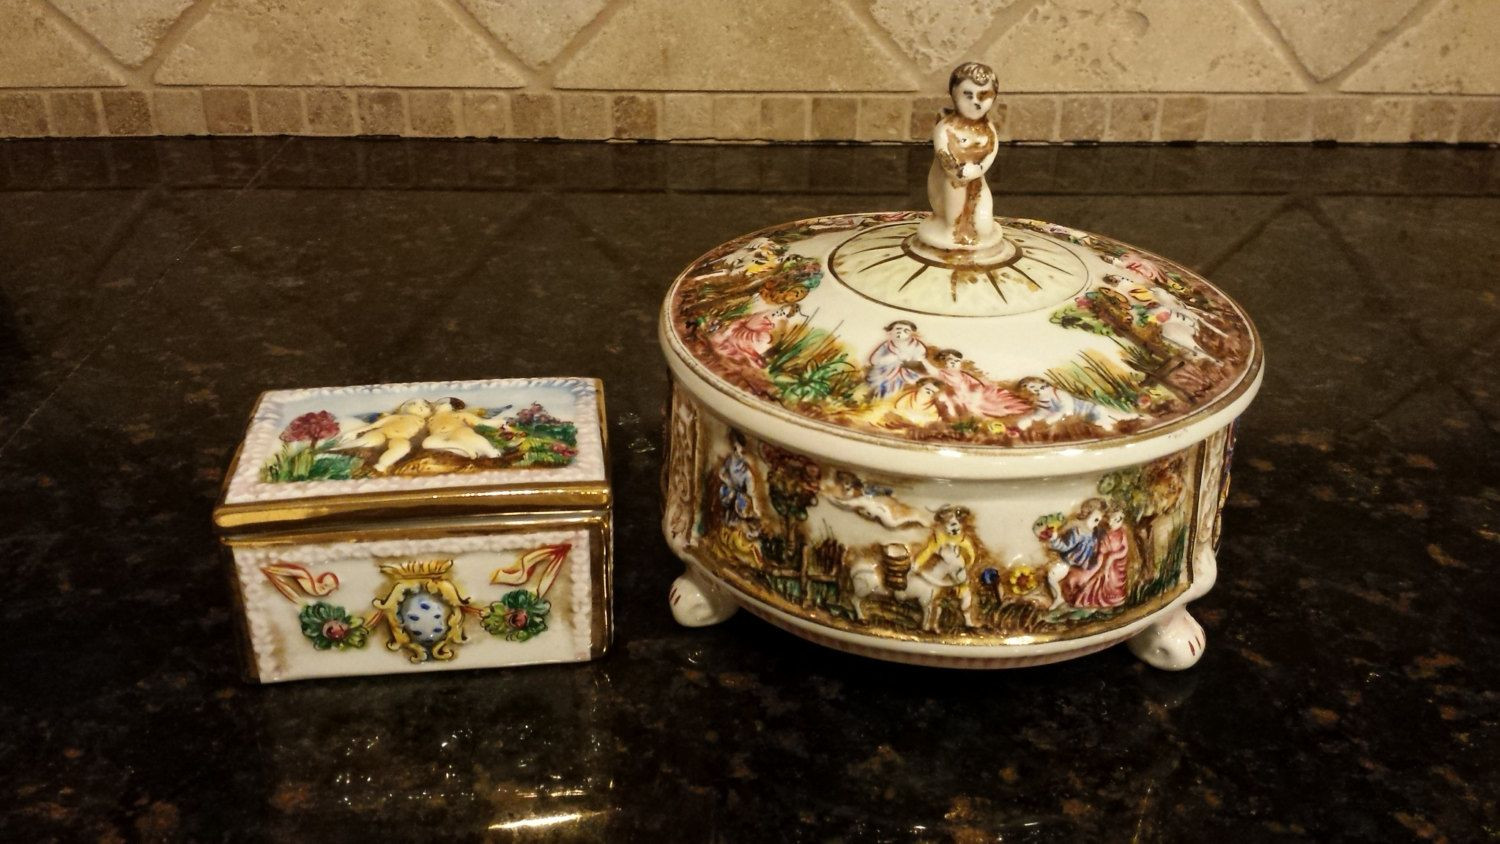 Vintage Capodimonte Vase Of Two Capodimonte Italy Pieces One Courting Couple Lidded Candy Dish for Two Capodimonte Italy Pieces One Courting Couple Lidded Candy Dish and One Cherub Trinket Box